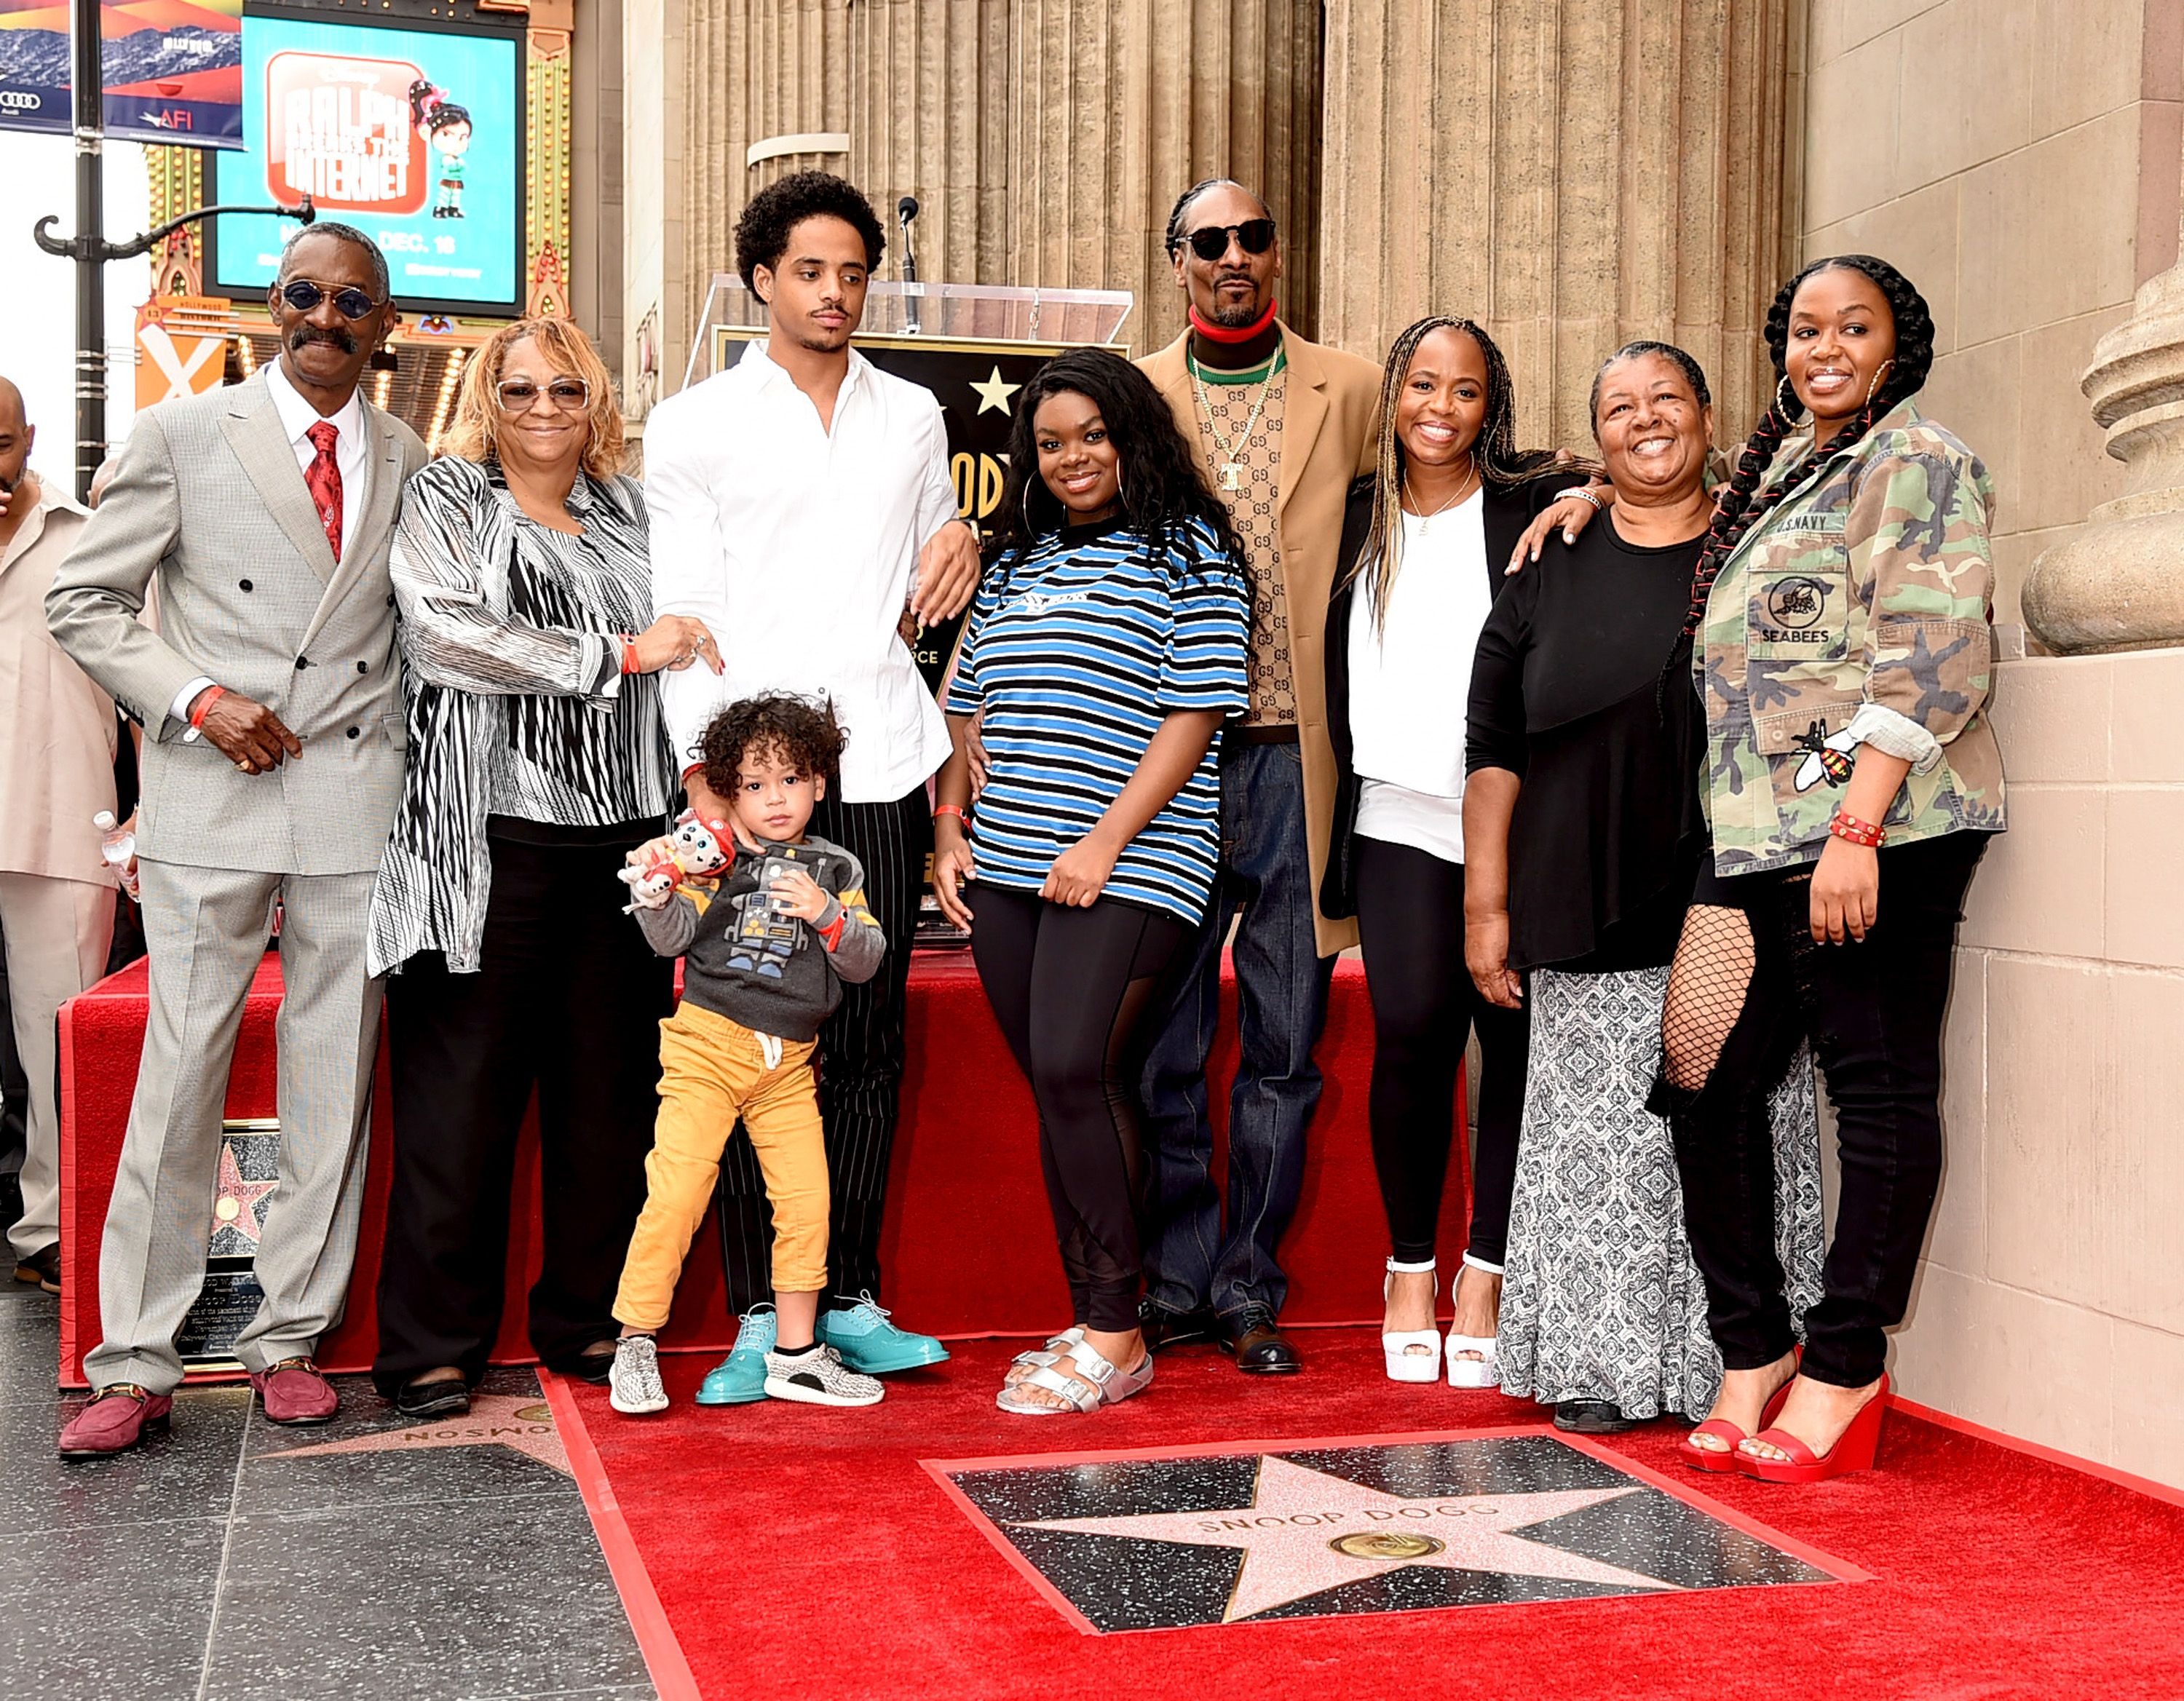 Snoop Dogg with family members